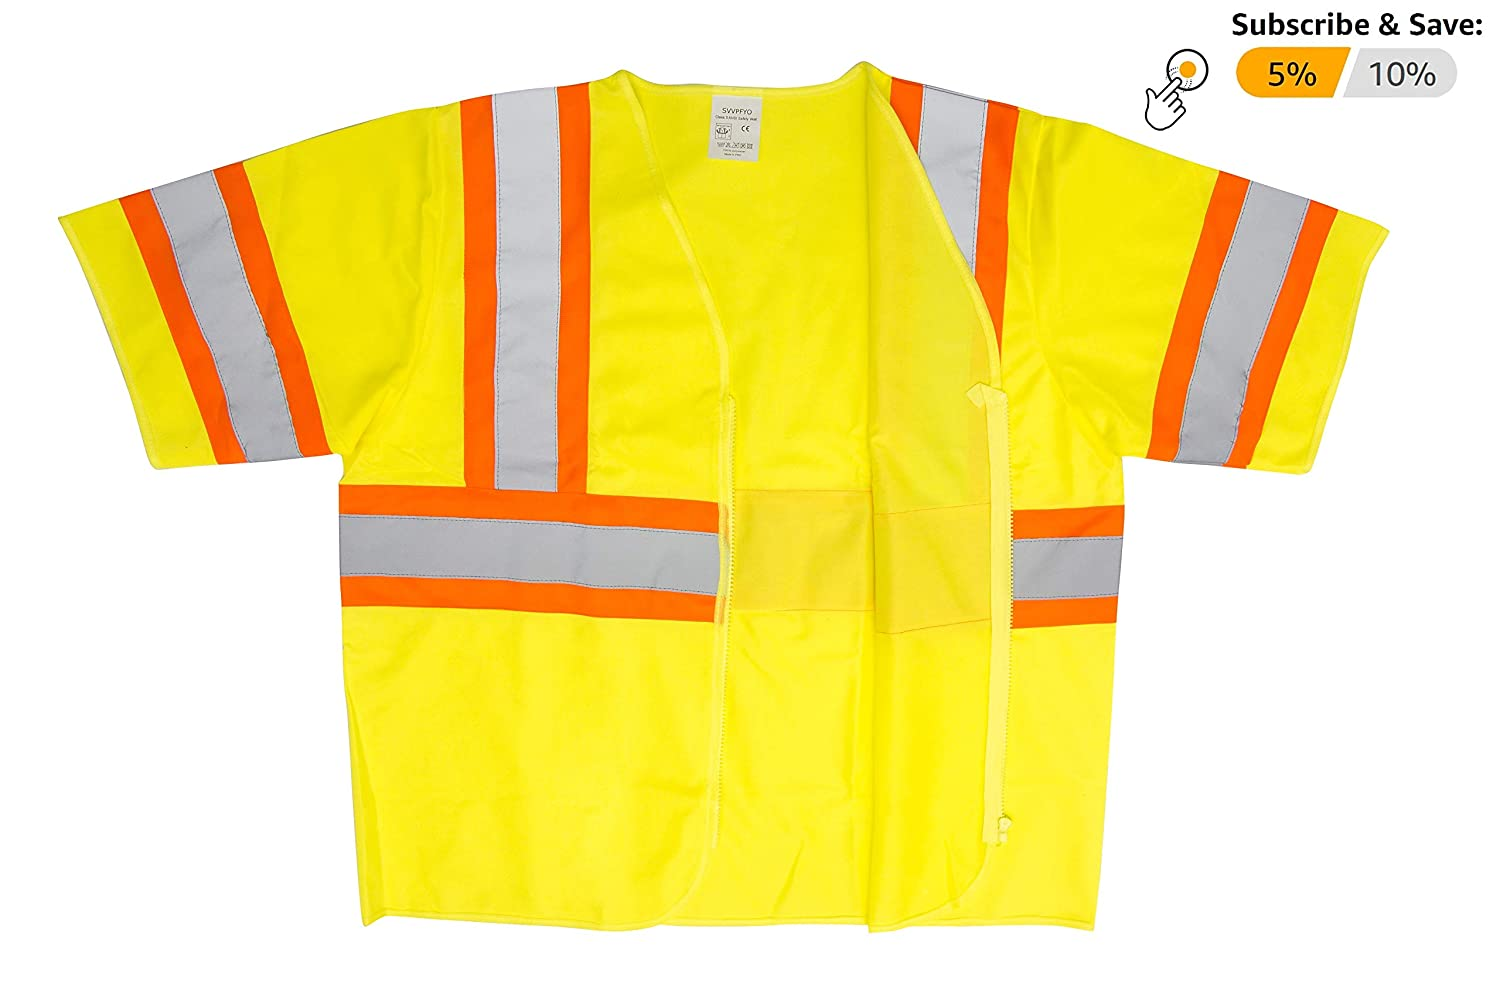 Neon Yellow Vests for Maximum Visibility. X-Large Yellow Lightweight Comfortable Vests Breathable Polyester Vests High Visibility Safety Vests with Orange Trim Silver Tape